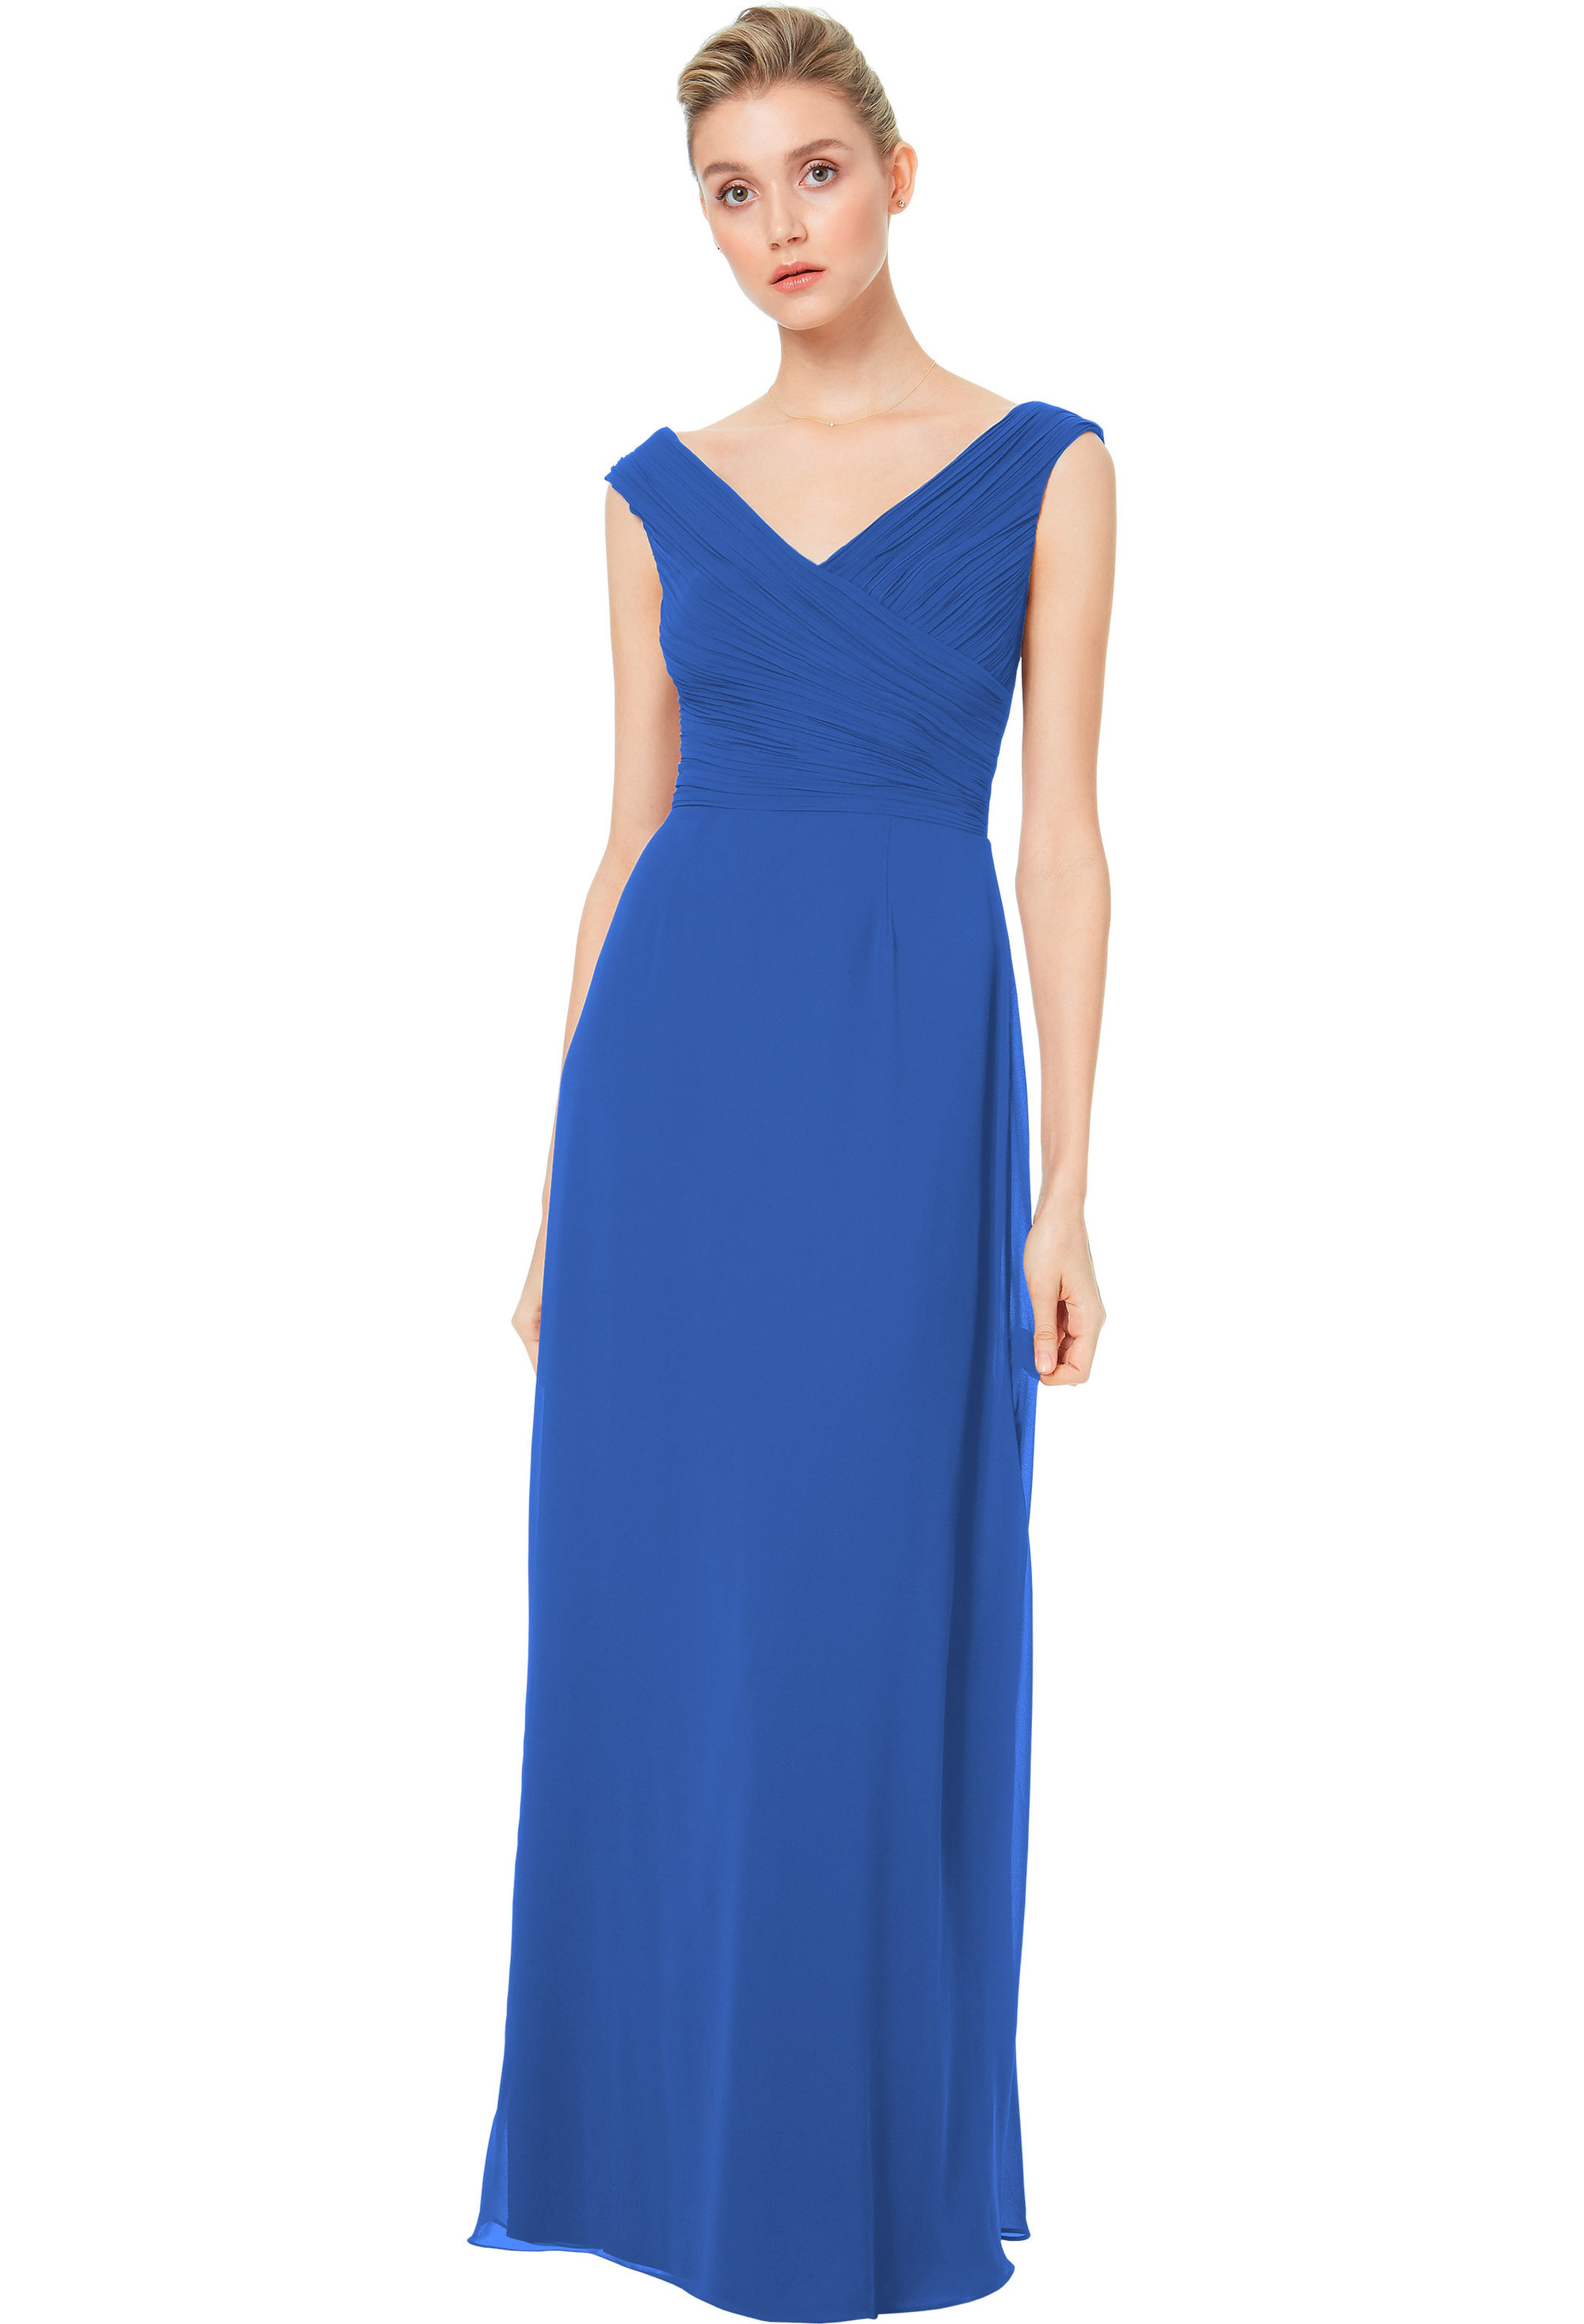 Bill Levkoff HORIZON Chiffon Off The Shoulder A-line gown, $158.00 Front